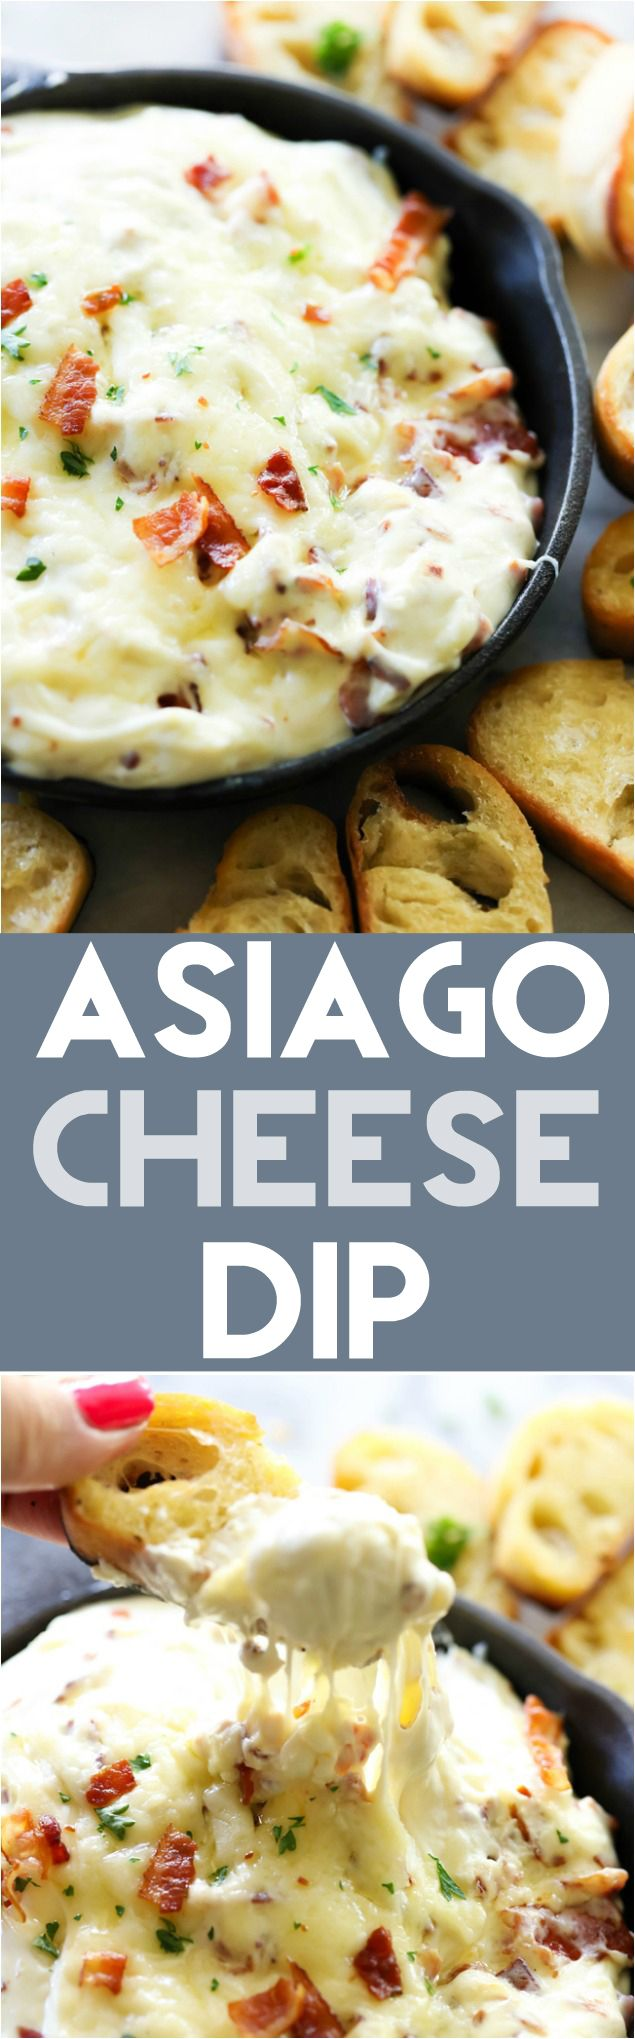 This Asiago Cheese Dip is loaded with cheesy goodness! The flavor is amazing and it is so simple to make! Great for parties and get togethers!